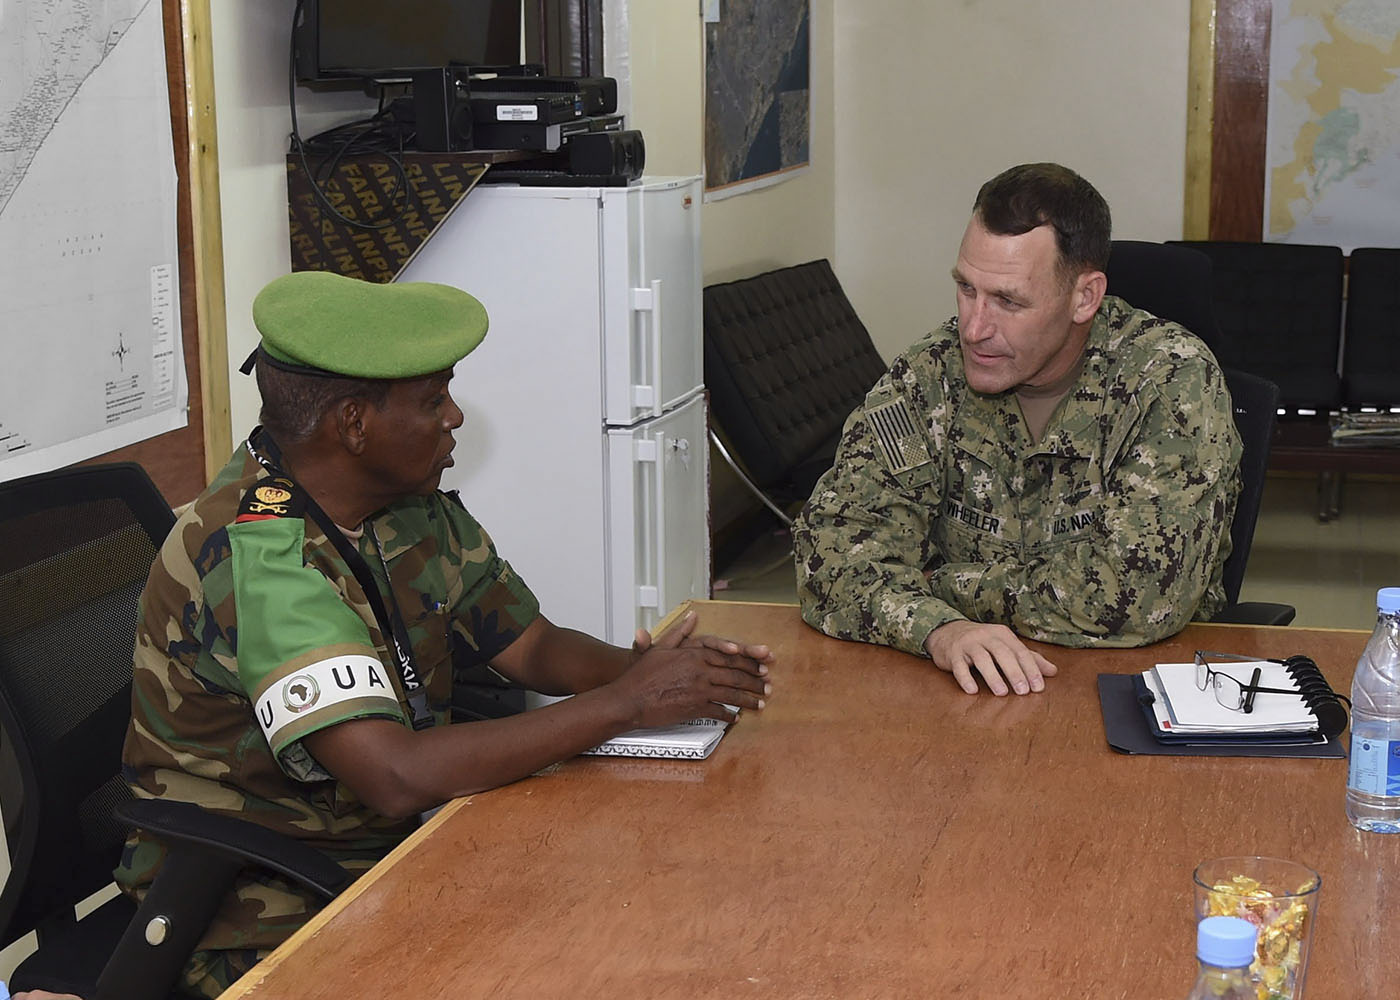 Lt. Gen. Osman Soubagleh, the force commander of African Union Mission in Somalia (AMISOM) and U.S. Navy Rear Adm. William Wheeler III, deputy commander of Combined Joint Task Force-Horn of Africa (CJTF-HOA), engage in discussion in the Military Coordination Cell conference room, Nov. 2, 2016, in Mogadishu, Somalia. The venue allowed members to discuss security situations, AMISOM challenges, and the current dynamics seen by both sides. These meetings align with the CJTF-HOA mission of supporting and enabling the stabilization of Somalia. (U.S. Air Force photo illustration by Staff Sgt. Penny Snoozy)